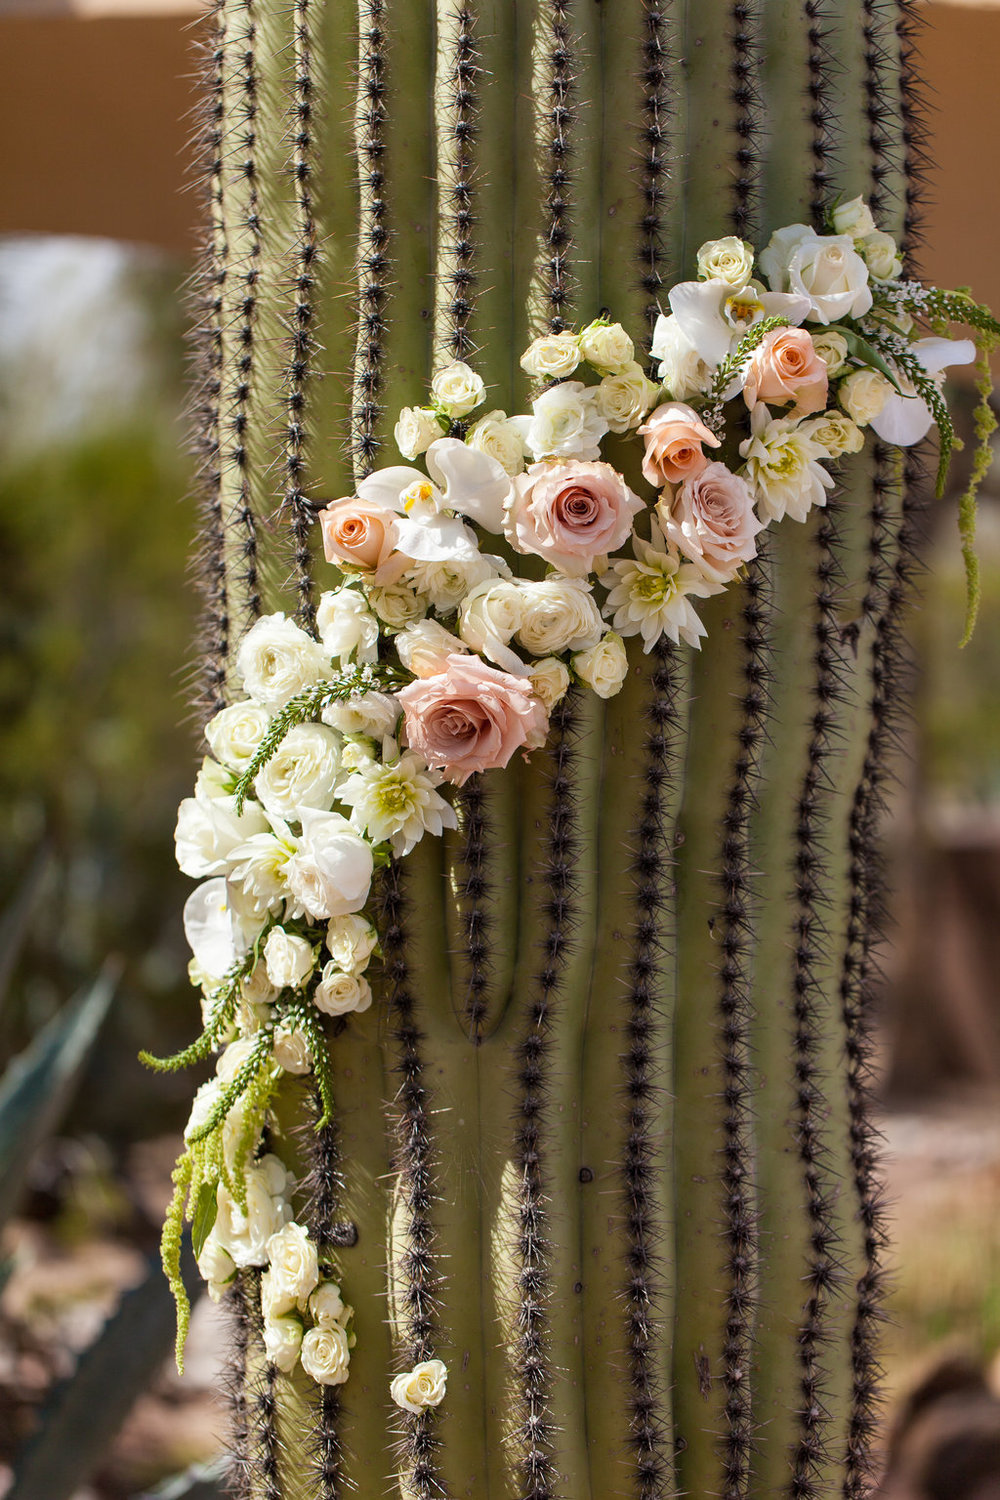 Wedding decor, cactus, flowers, ivory, peach, blush, rustic, southwest, ceremony, Phoenix Scottsdale Arizona Wedding Planner